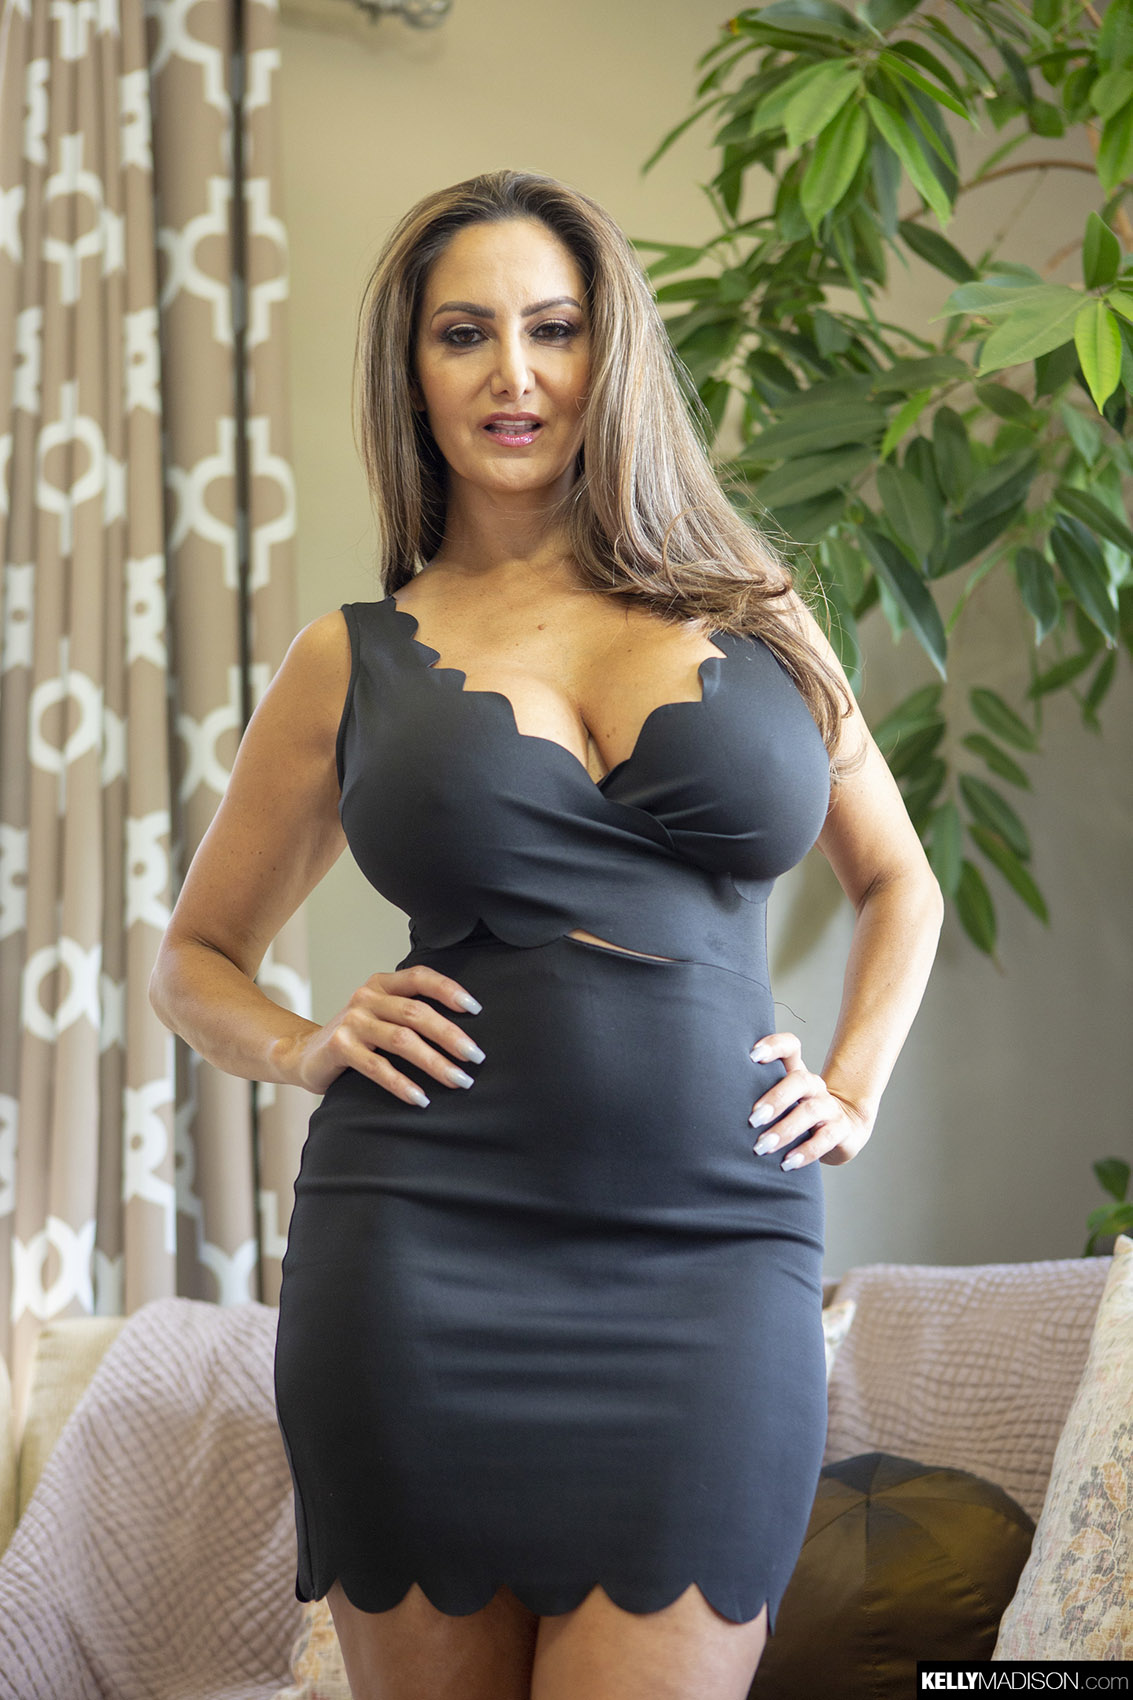 Milf dress gallery